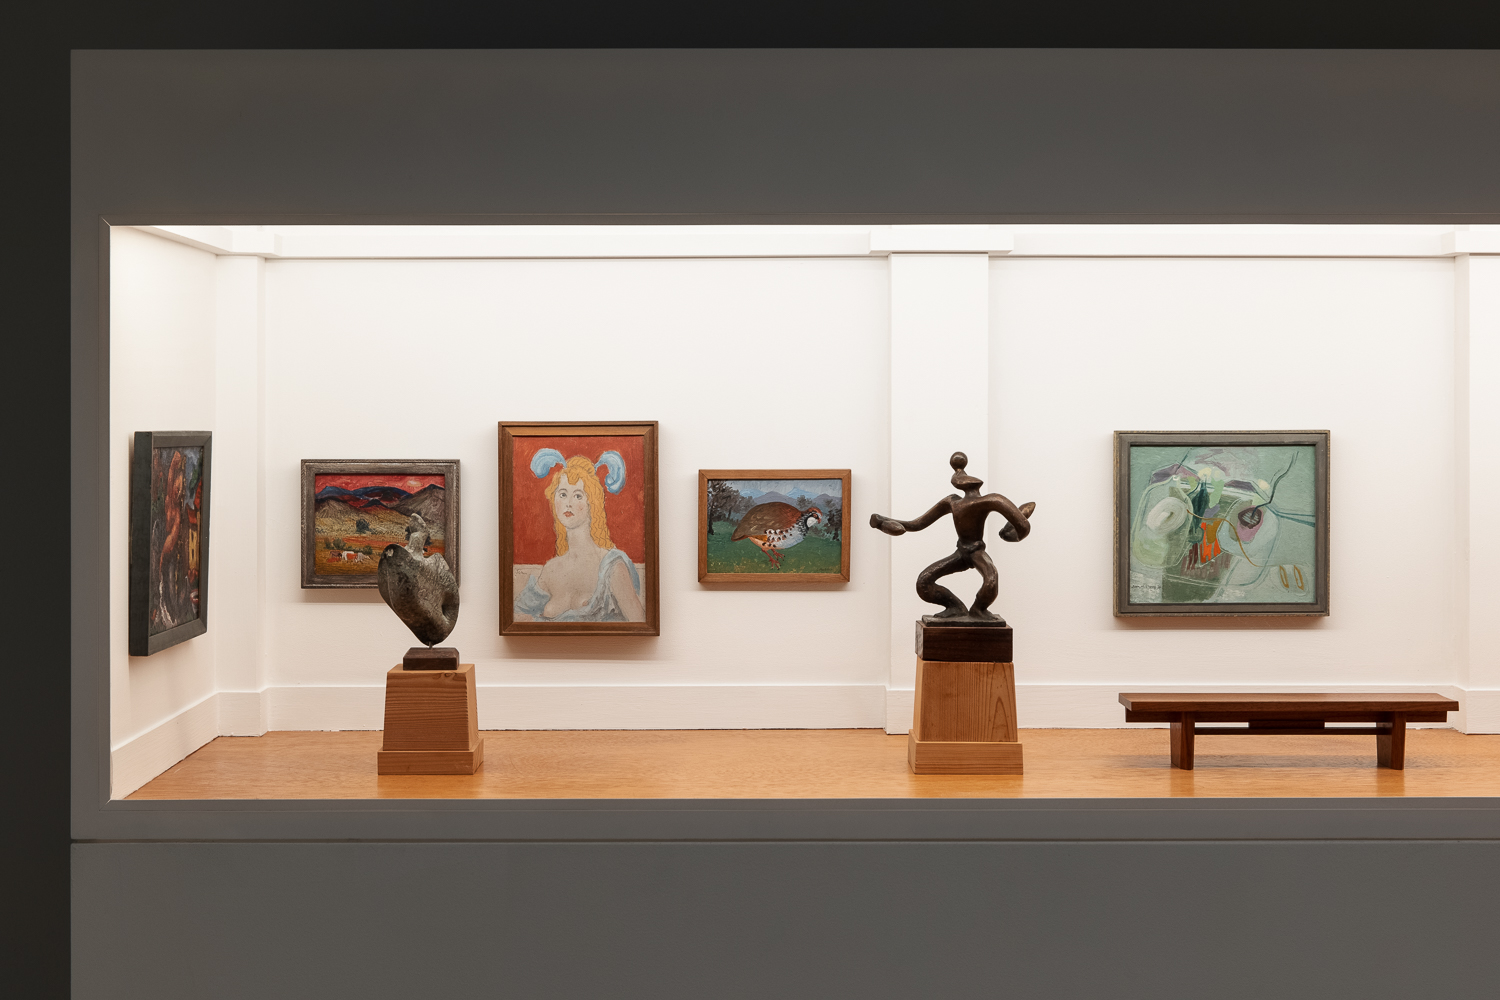 Seven works of art in a gallery with white walls and wooden flooring. One painting is on the left hand wall and four (depicting a landscape, a portrait of a woman, a grouse and an abstract painting of flowers) are on the back wall. In the foreground are two sculptures; the one on the left is an abstracted sculpture of a seabird rising from water and the other is a human figure, juggling. To the right of that sculpture is a wooden bench.